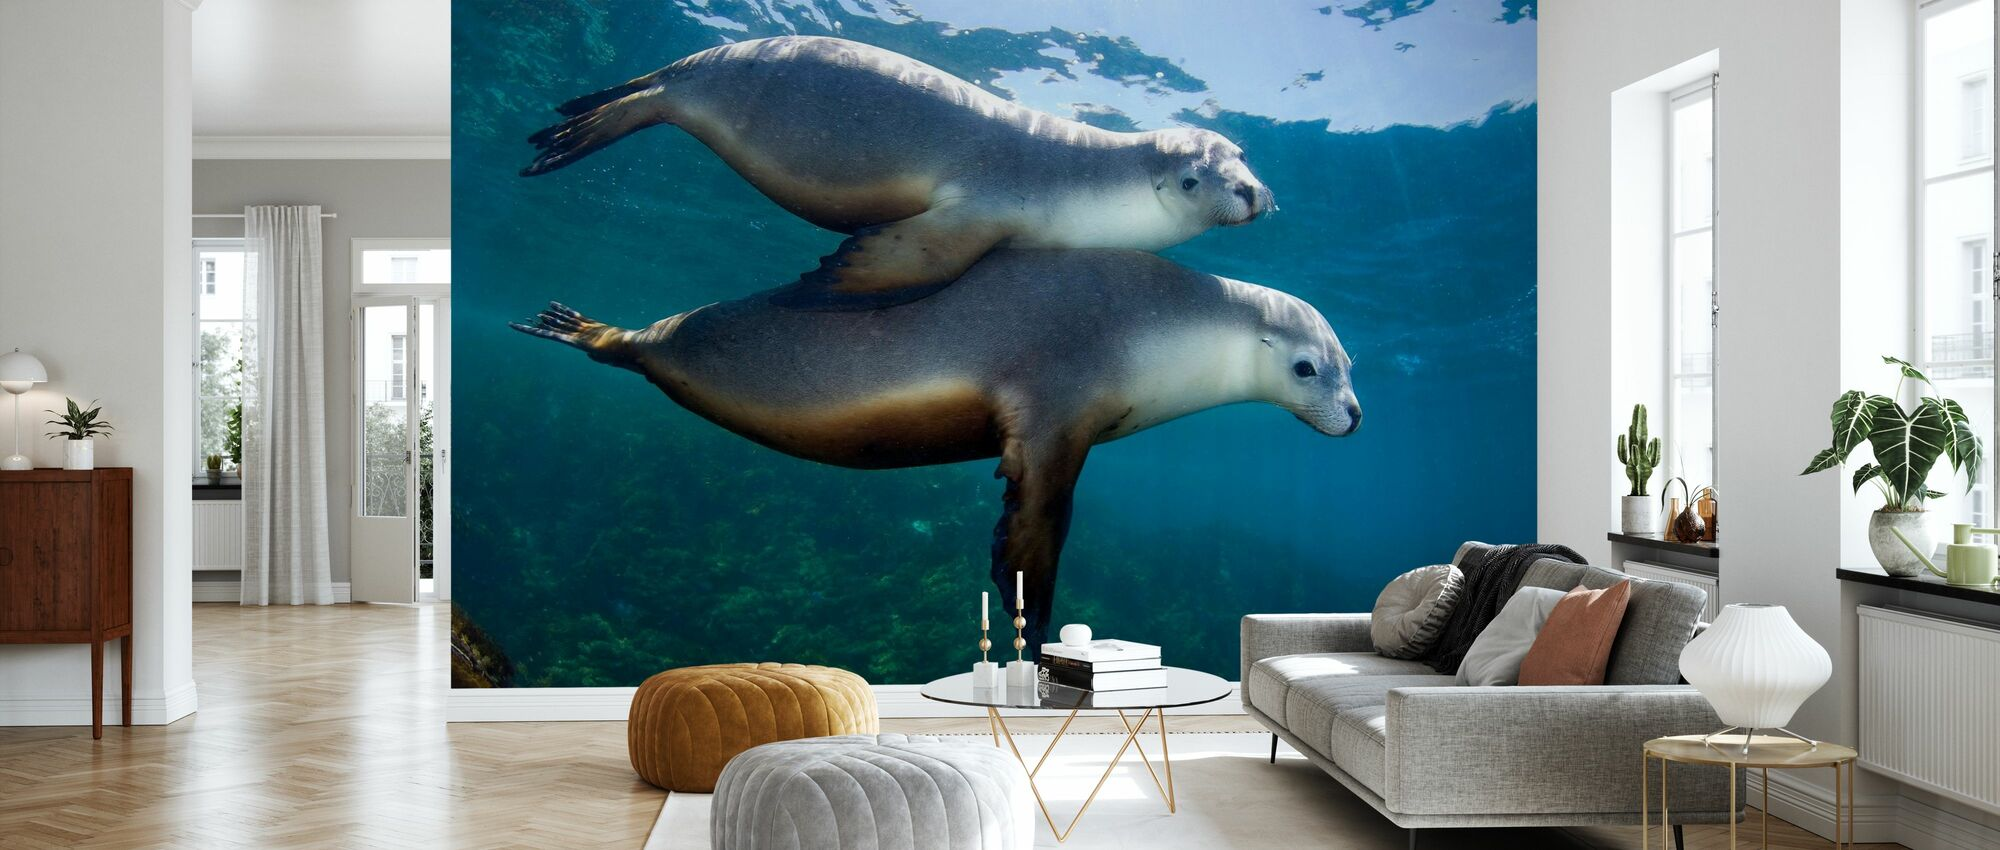 Pair of Sea Lions - Wallpaper - Living Room